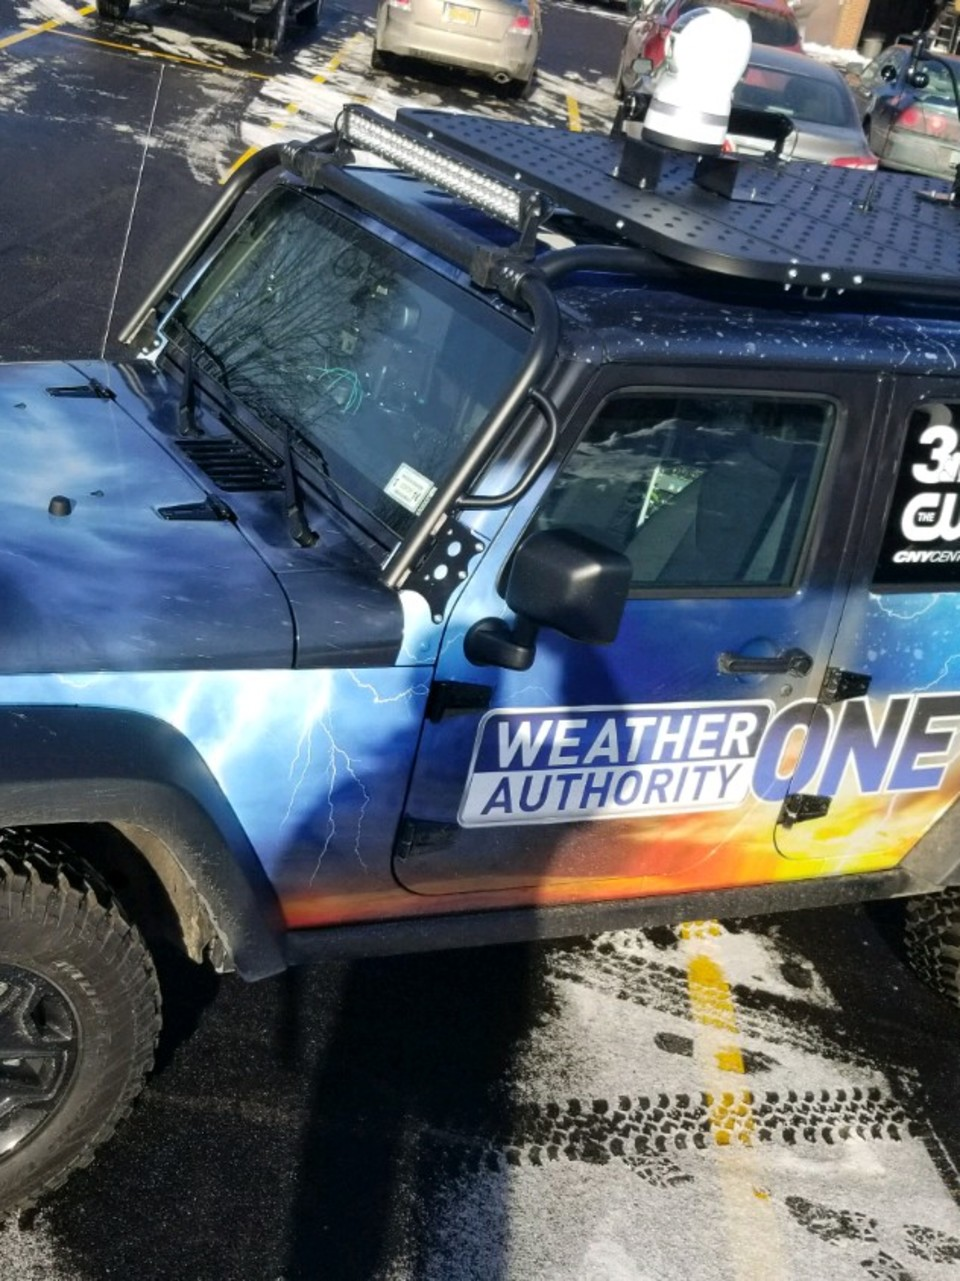 Introducing Weather Authority One Our